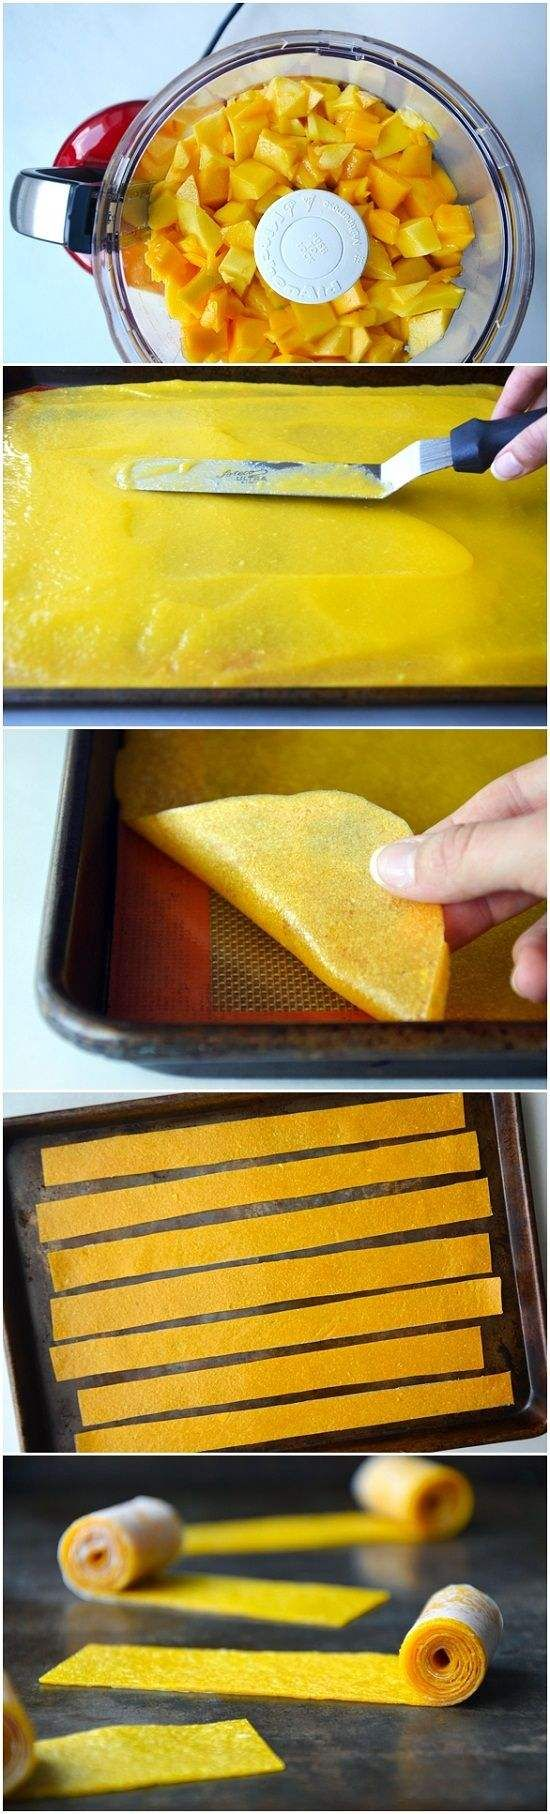 Homemade Mango Fruit Roll Ups- the only ingredient is mango. Puree, spread, bake 3-4 hours at 175 and done.